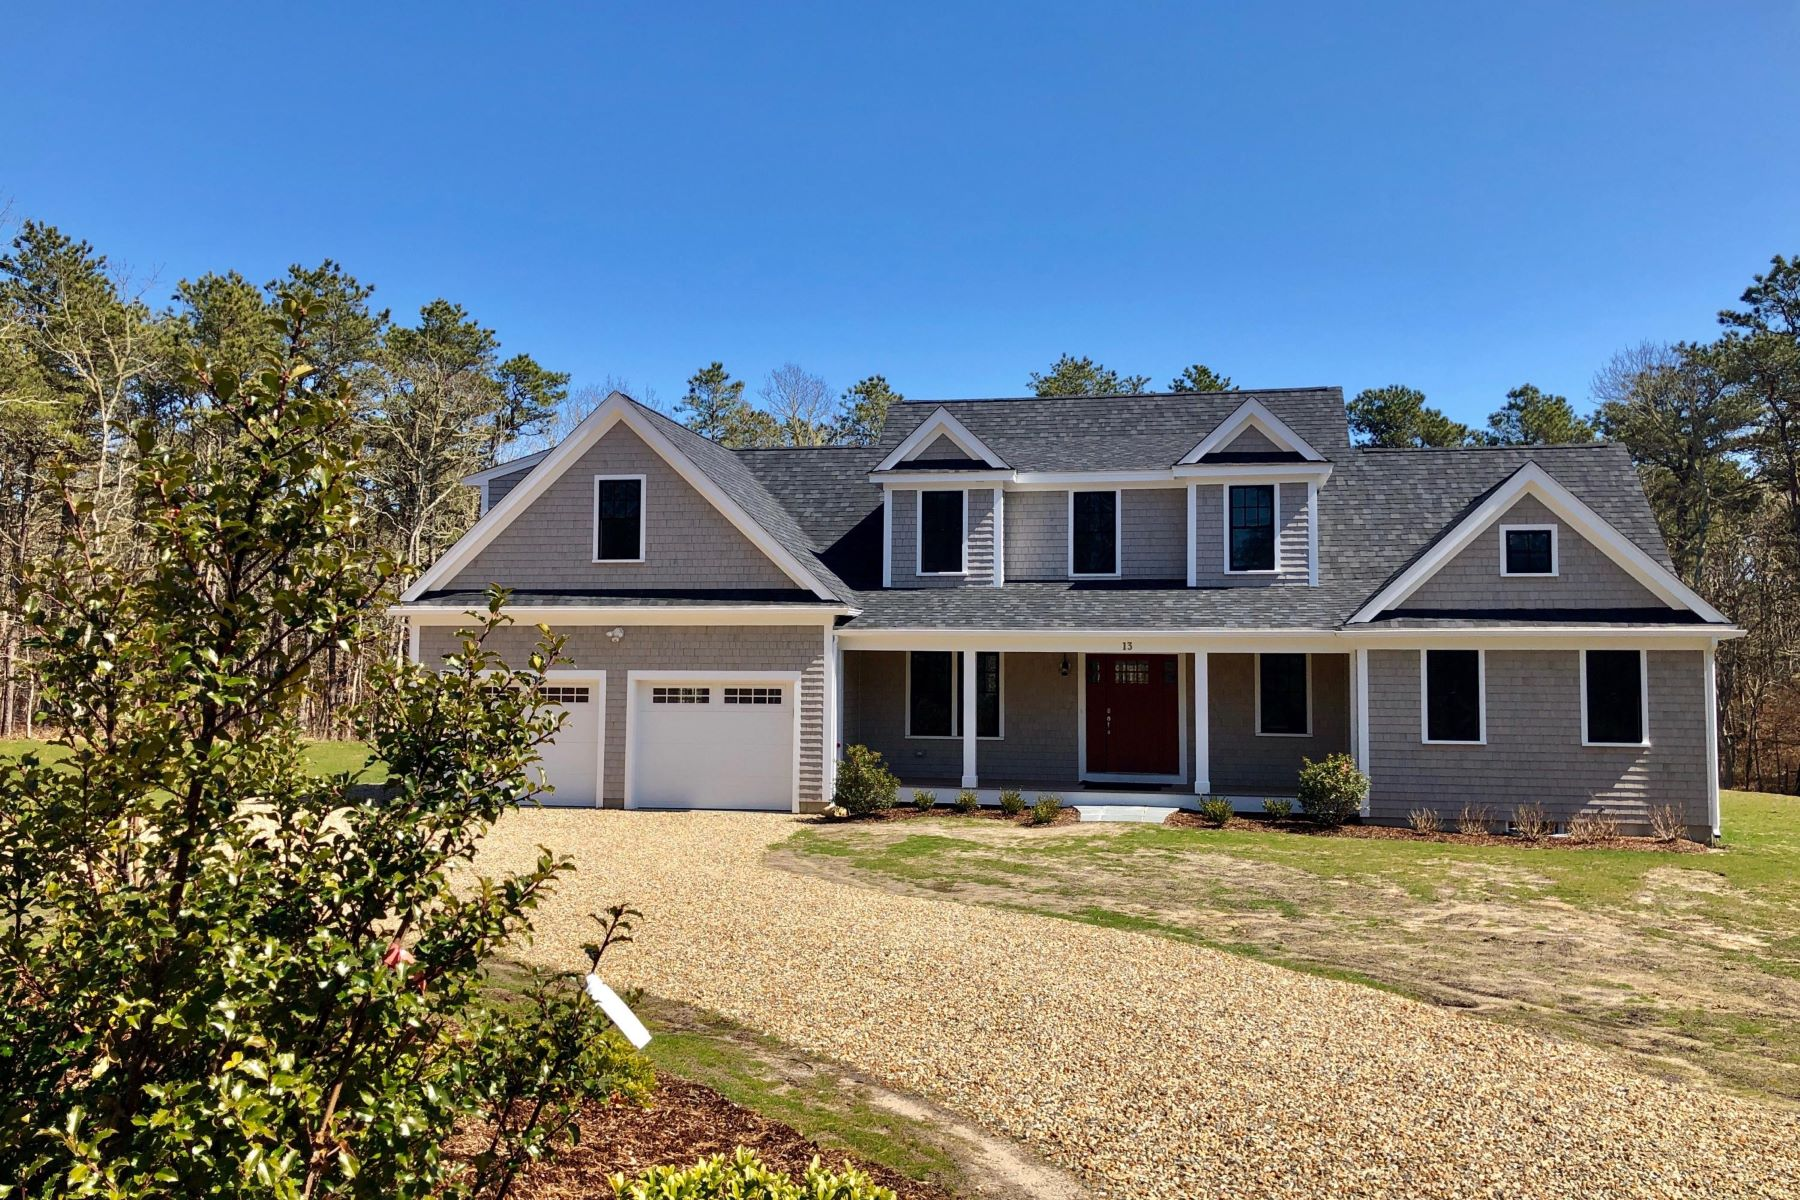 Single Family Home for Active at 13 Tuckers Way, Harwich, MA 13 Tuckers Way Harwich, Massachusetts 02645 United States